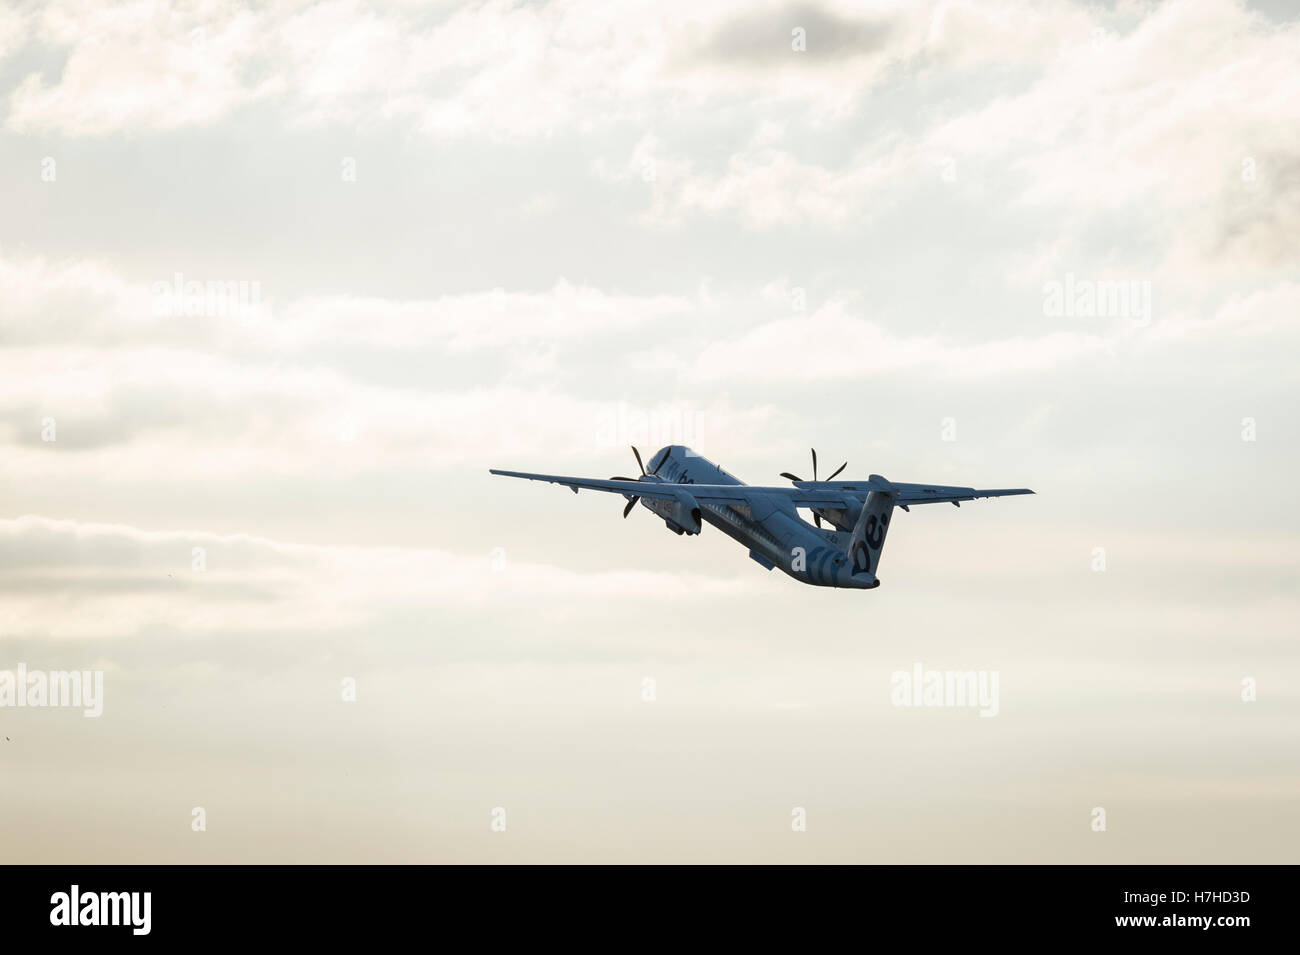 A Flybe Bombardier Q400 Dash-8 turboprop takes-off from Exeter Airport. - Stock Image